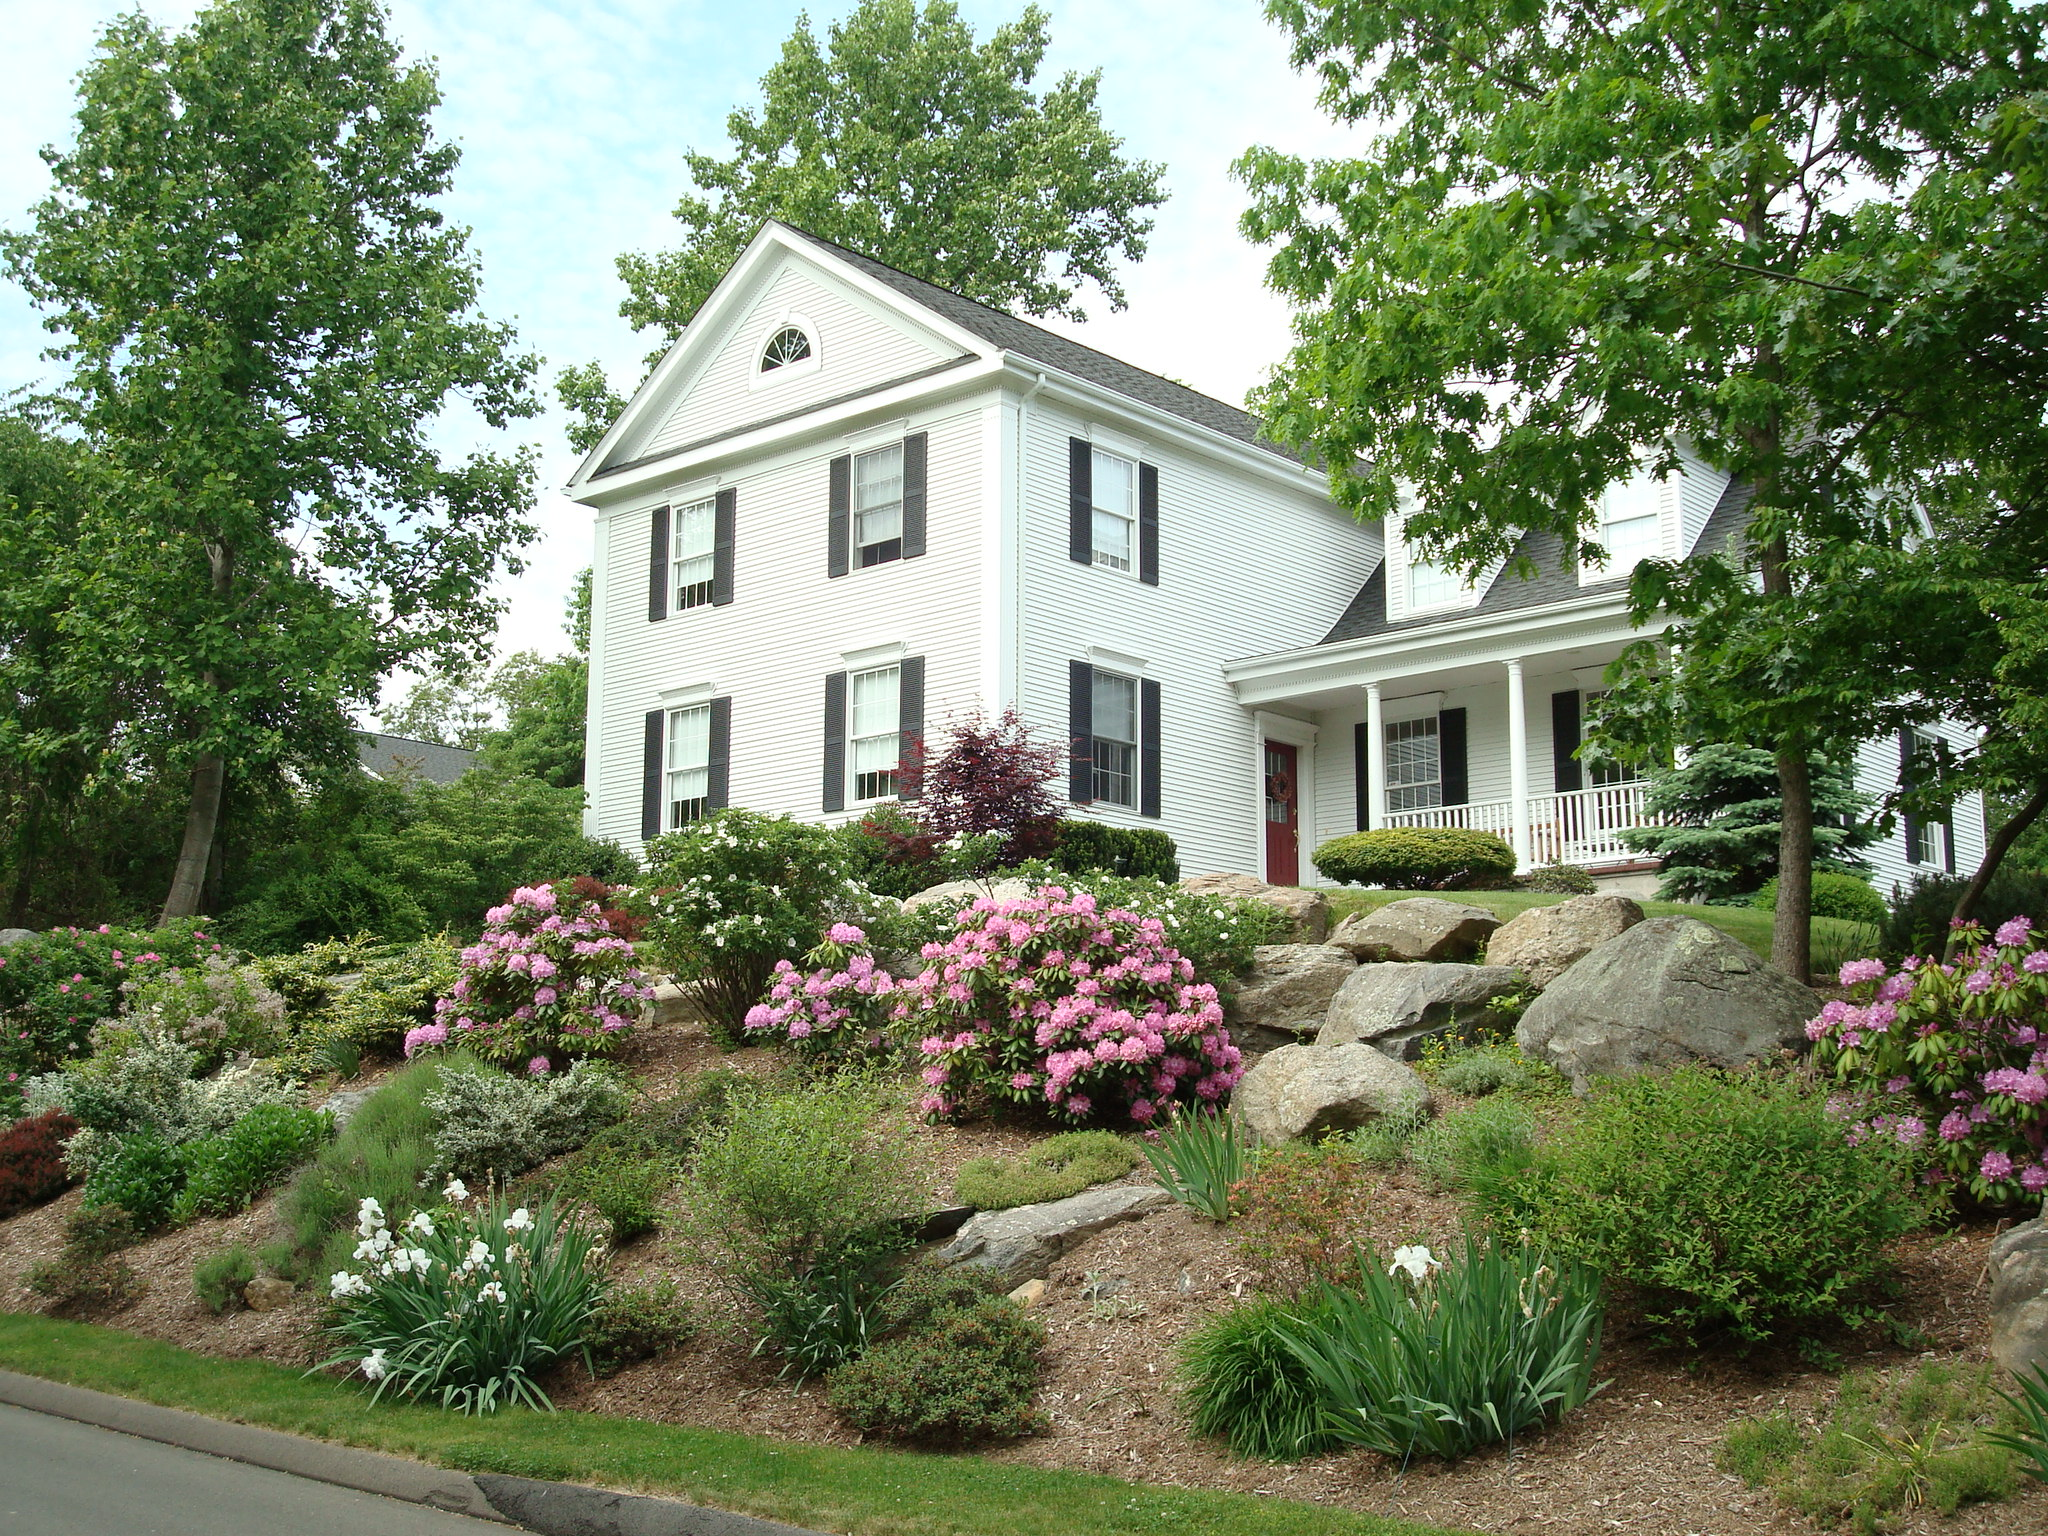 Casa Unifamiliar por un Venta en 58 Edinburgh Ln Madison, Connecticut 06443 Estados Unidos